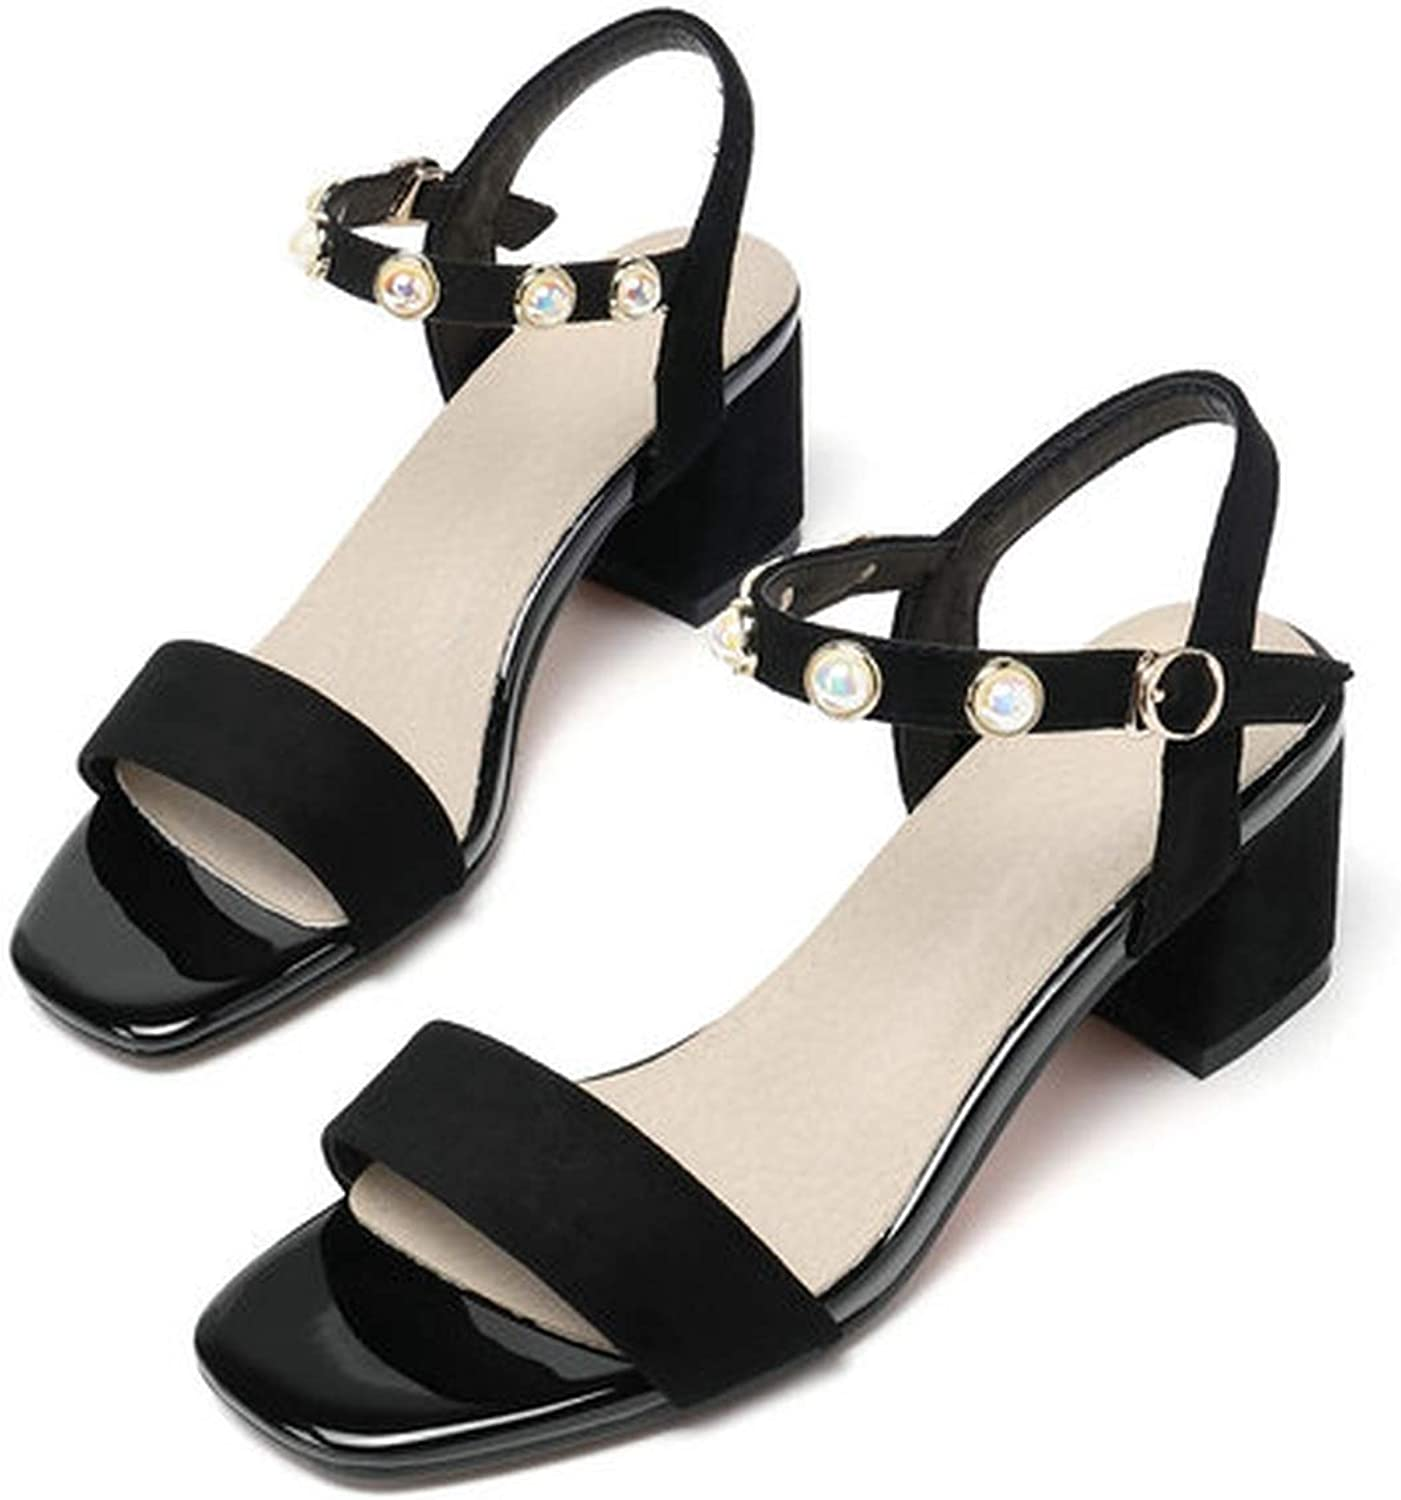 Small-Dream-Shop Sandals Square Open-Toed Buckle Bead Square High Heel Elegant Casual Anti-Skid Women Pumps 34-43